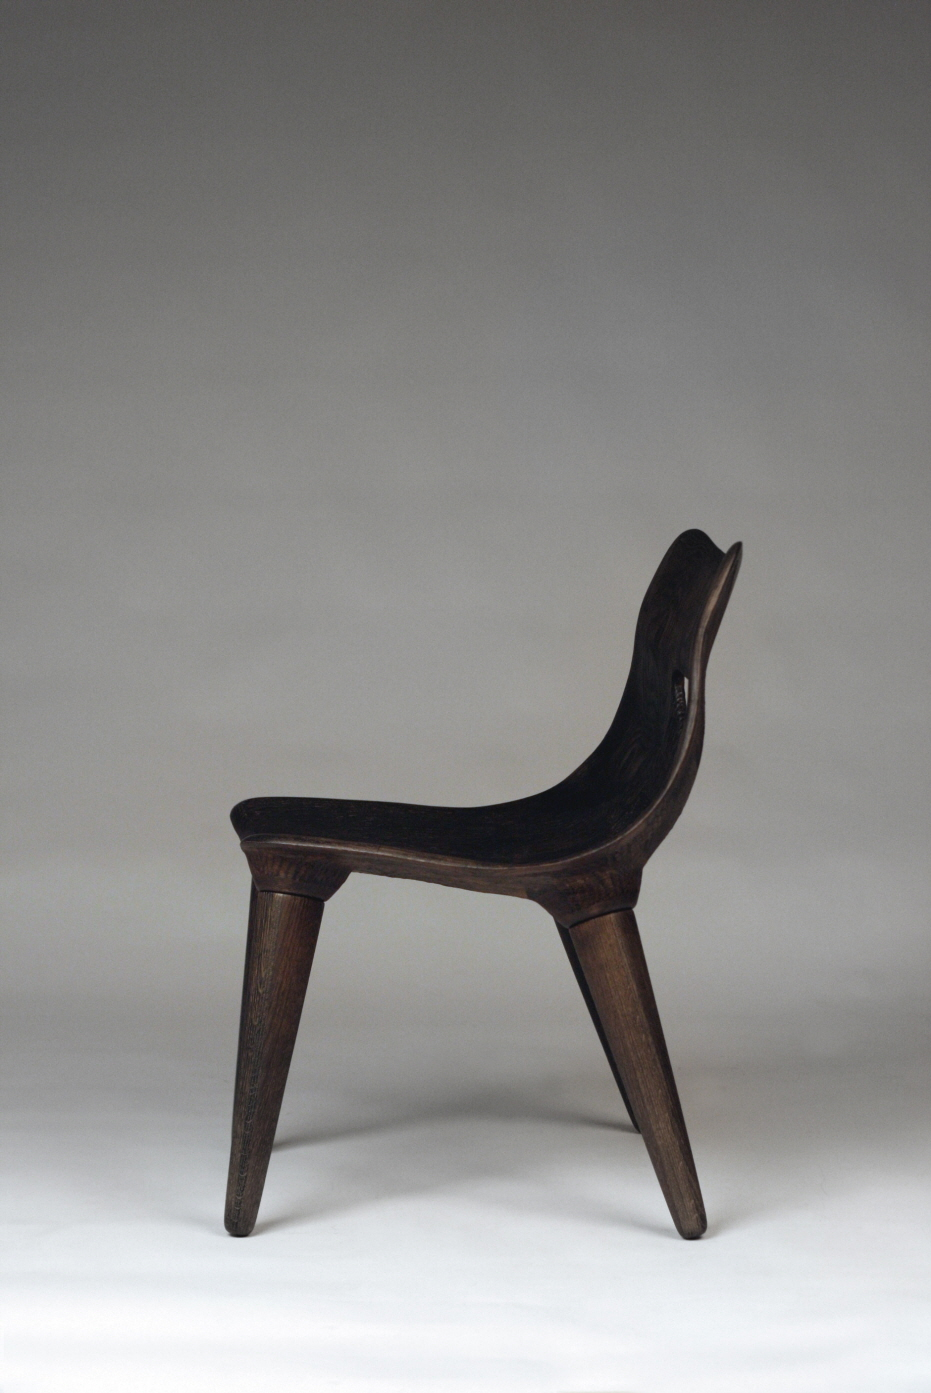 "Black Hole Chair no.2  / White Oak  22"" x 25"" x 32"" / 2018  $3,500 (Original)  $2,850 (Commission order)"